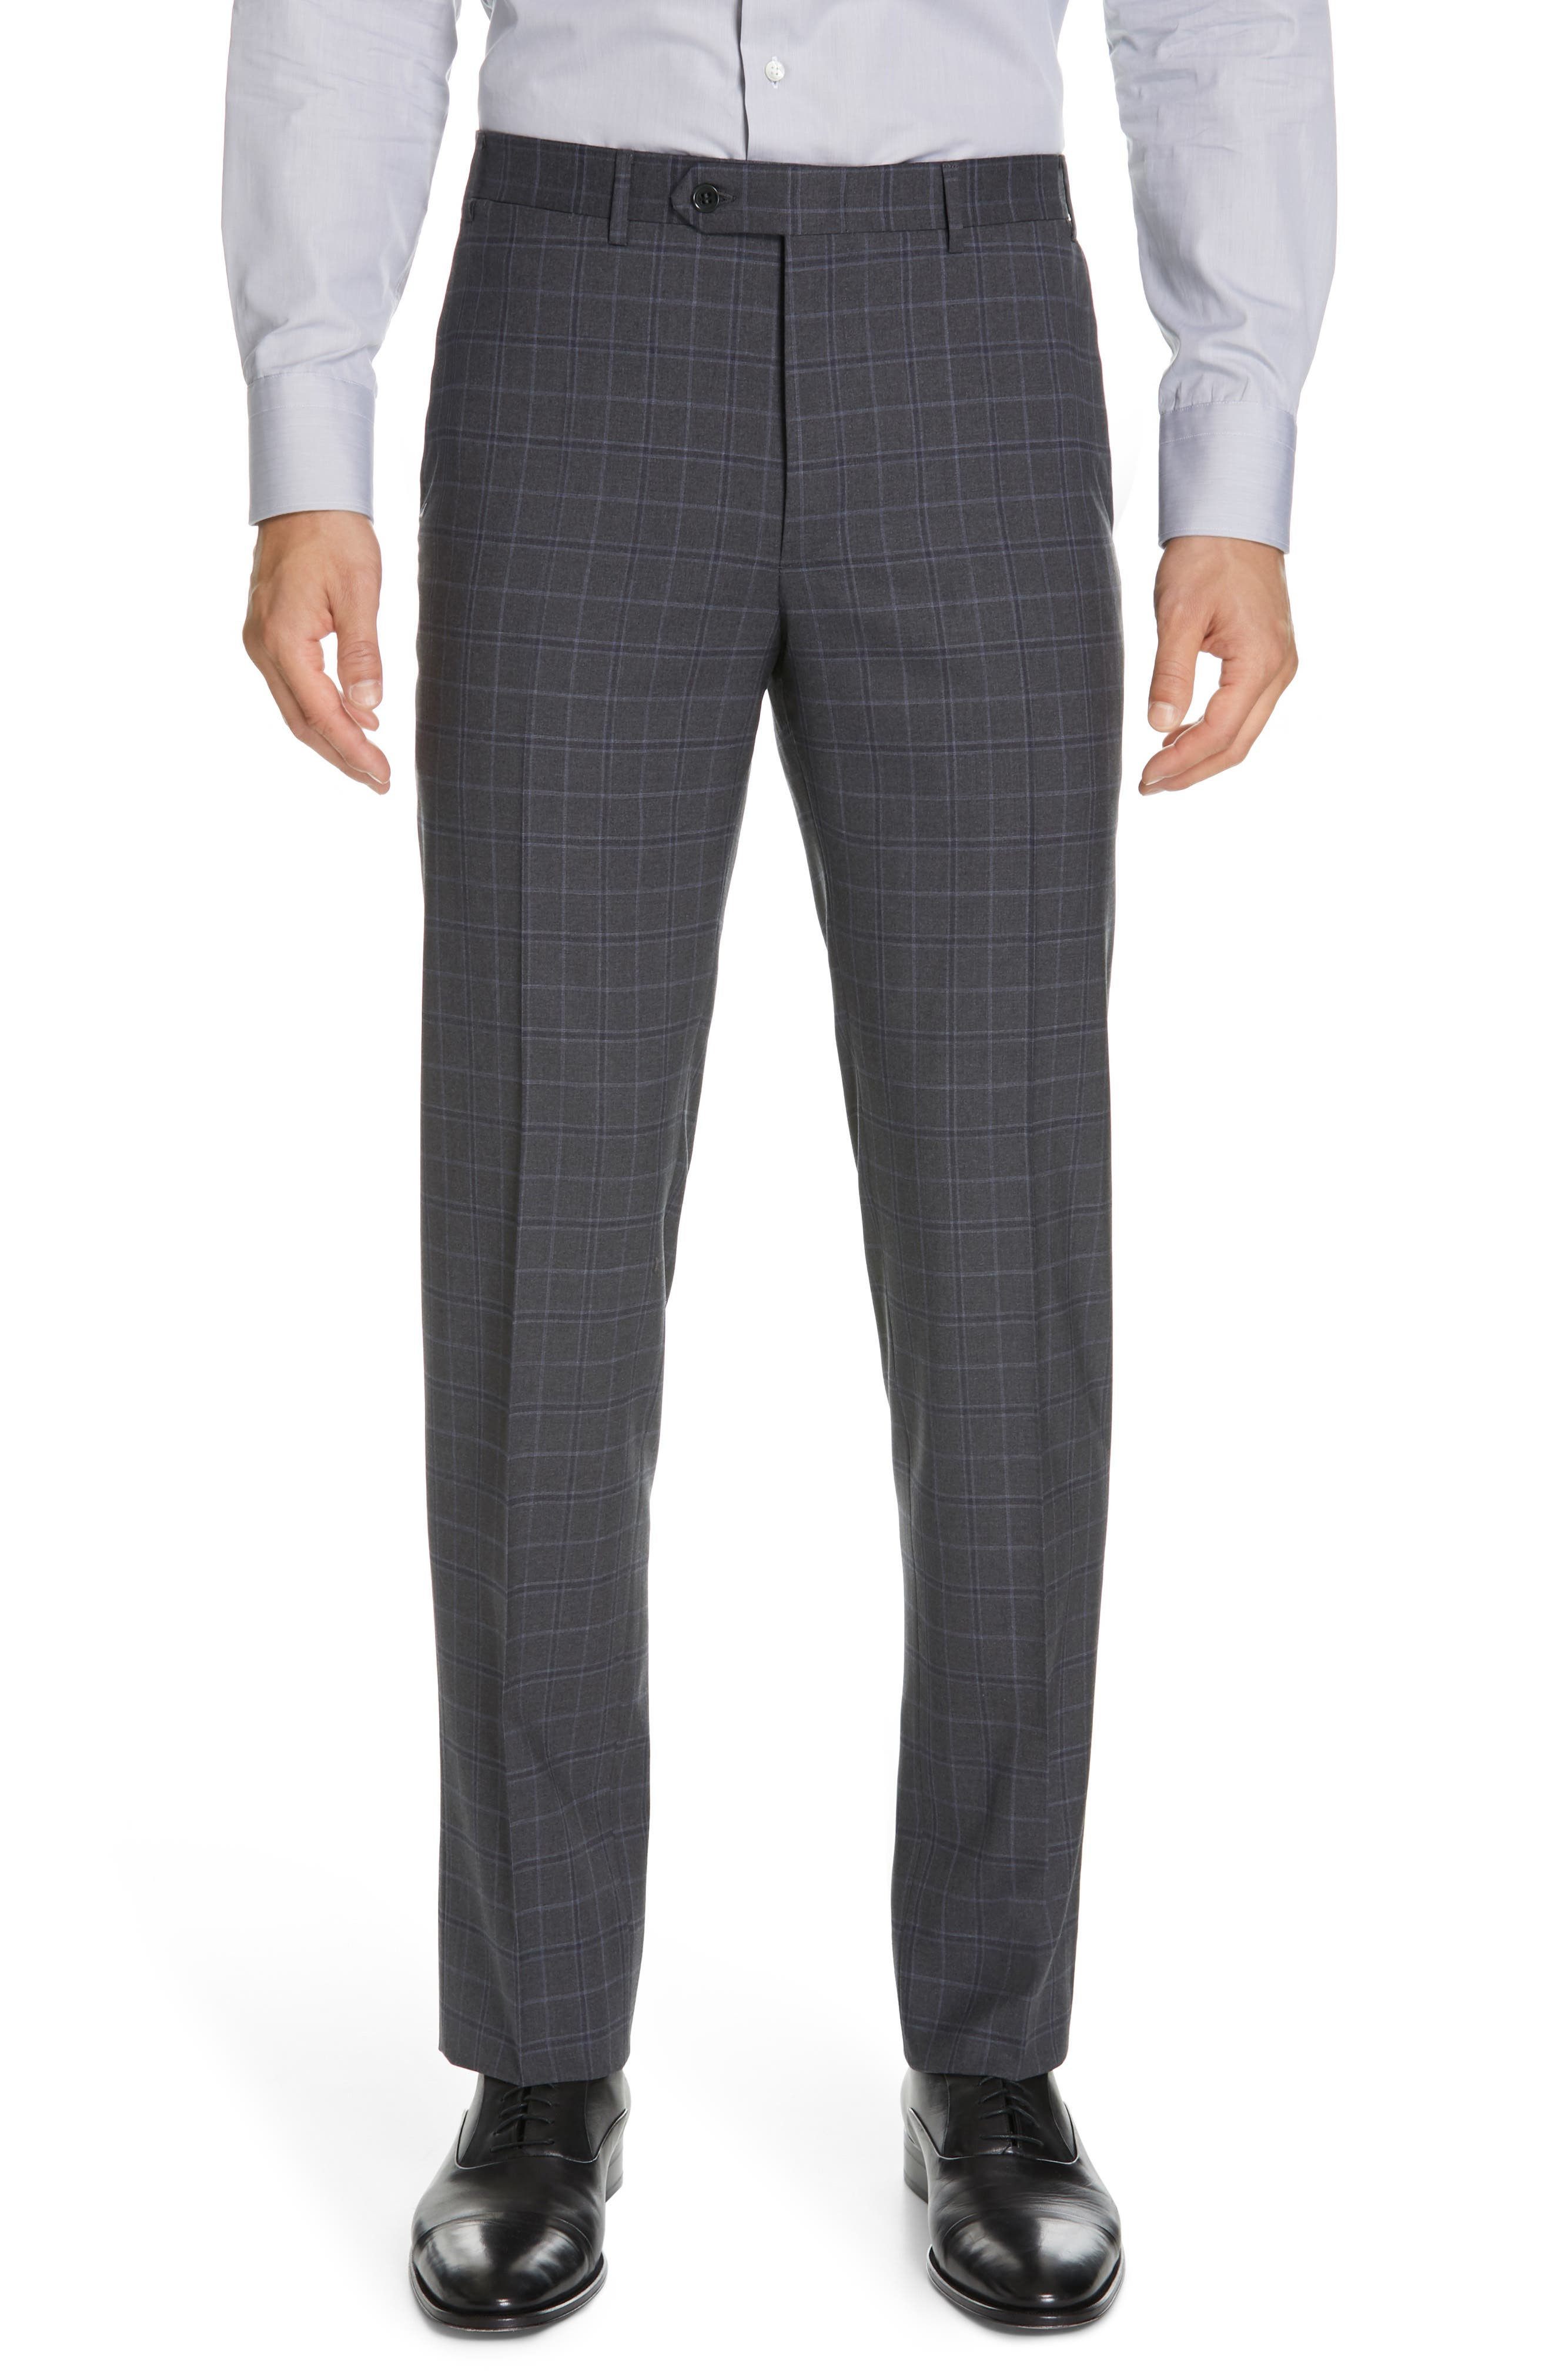 CANALI, Sienna Classic Fit Plaid Wool Suit, Alternate thumbnail 6, color, CHARCOAL